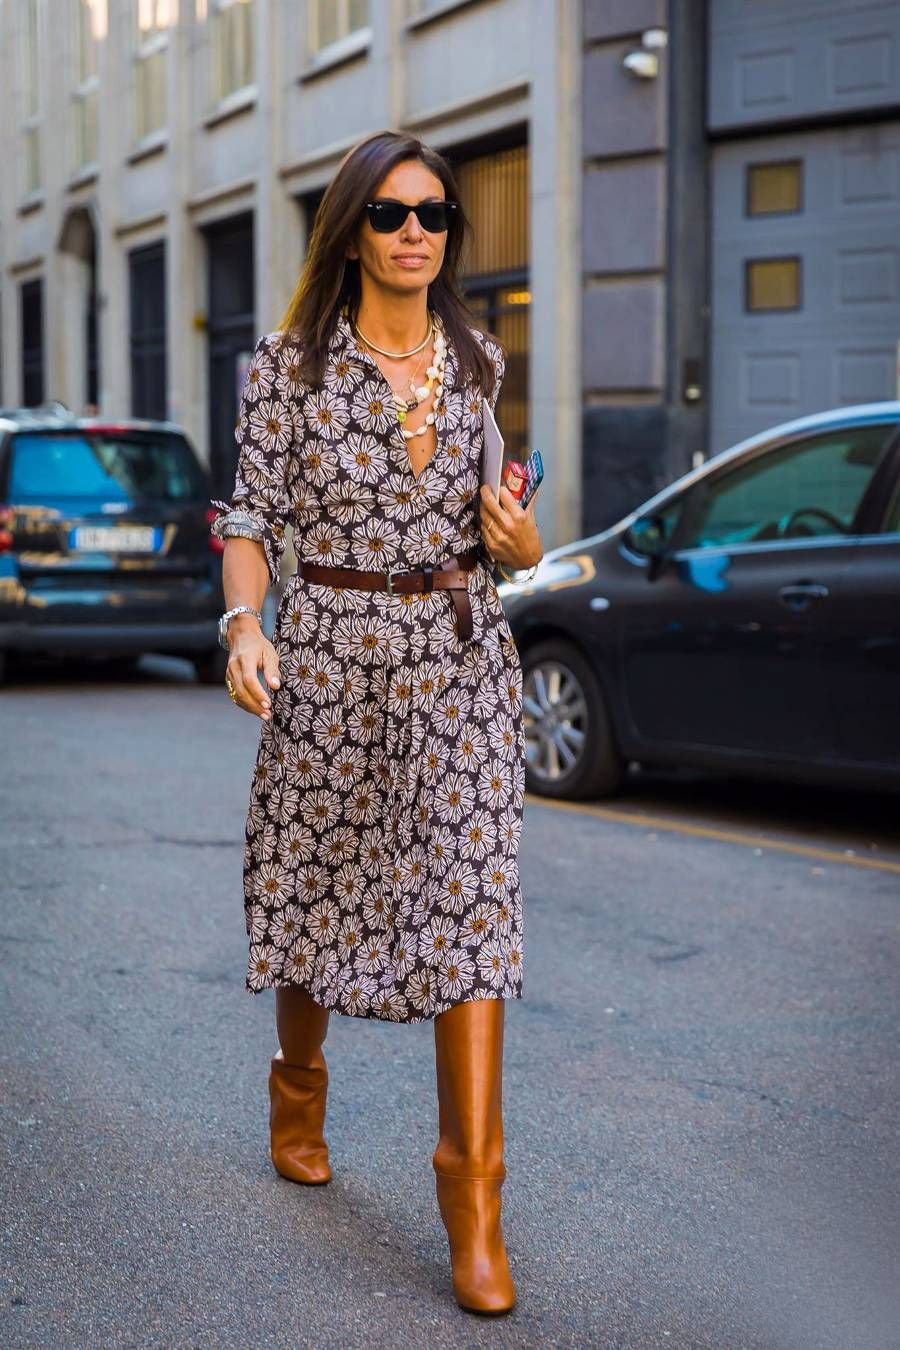 6 Chic Work Outfits That Require Only 2 Items